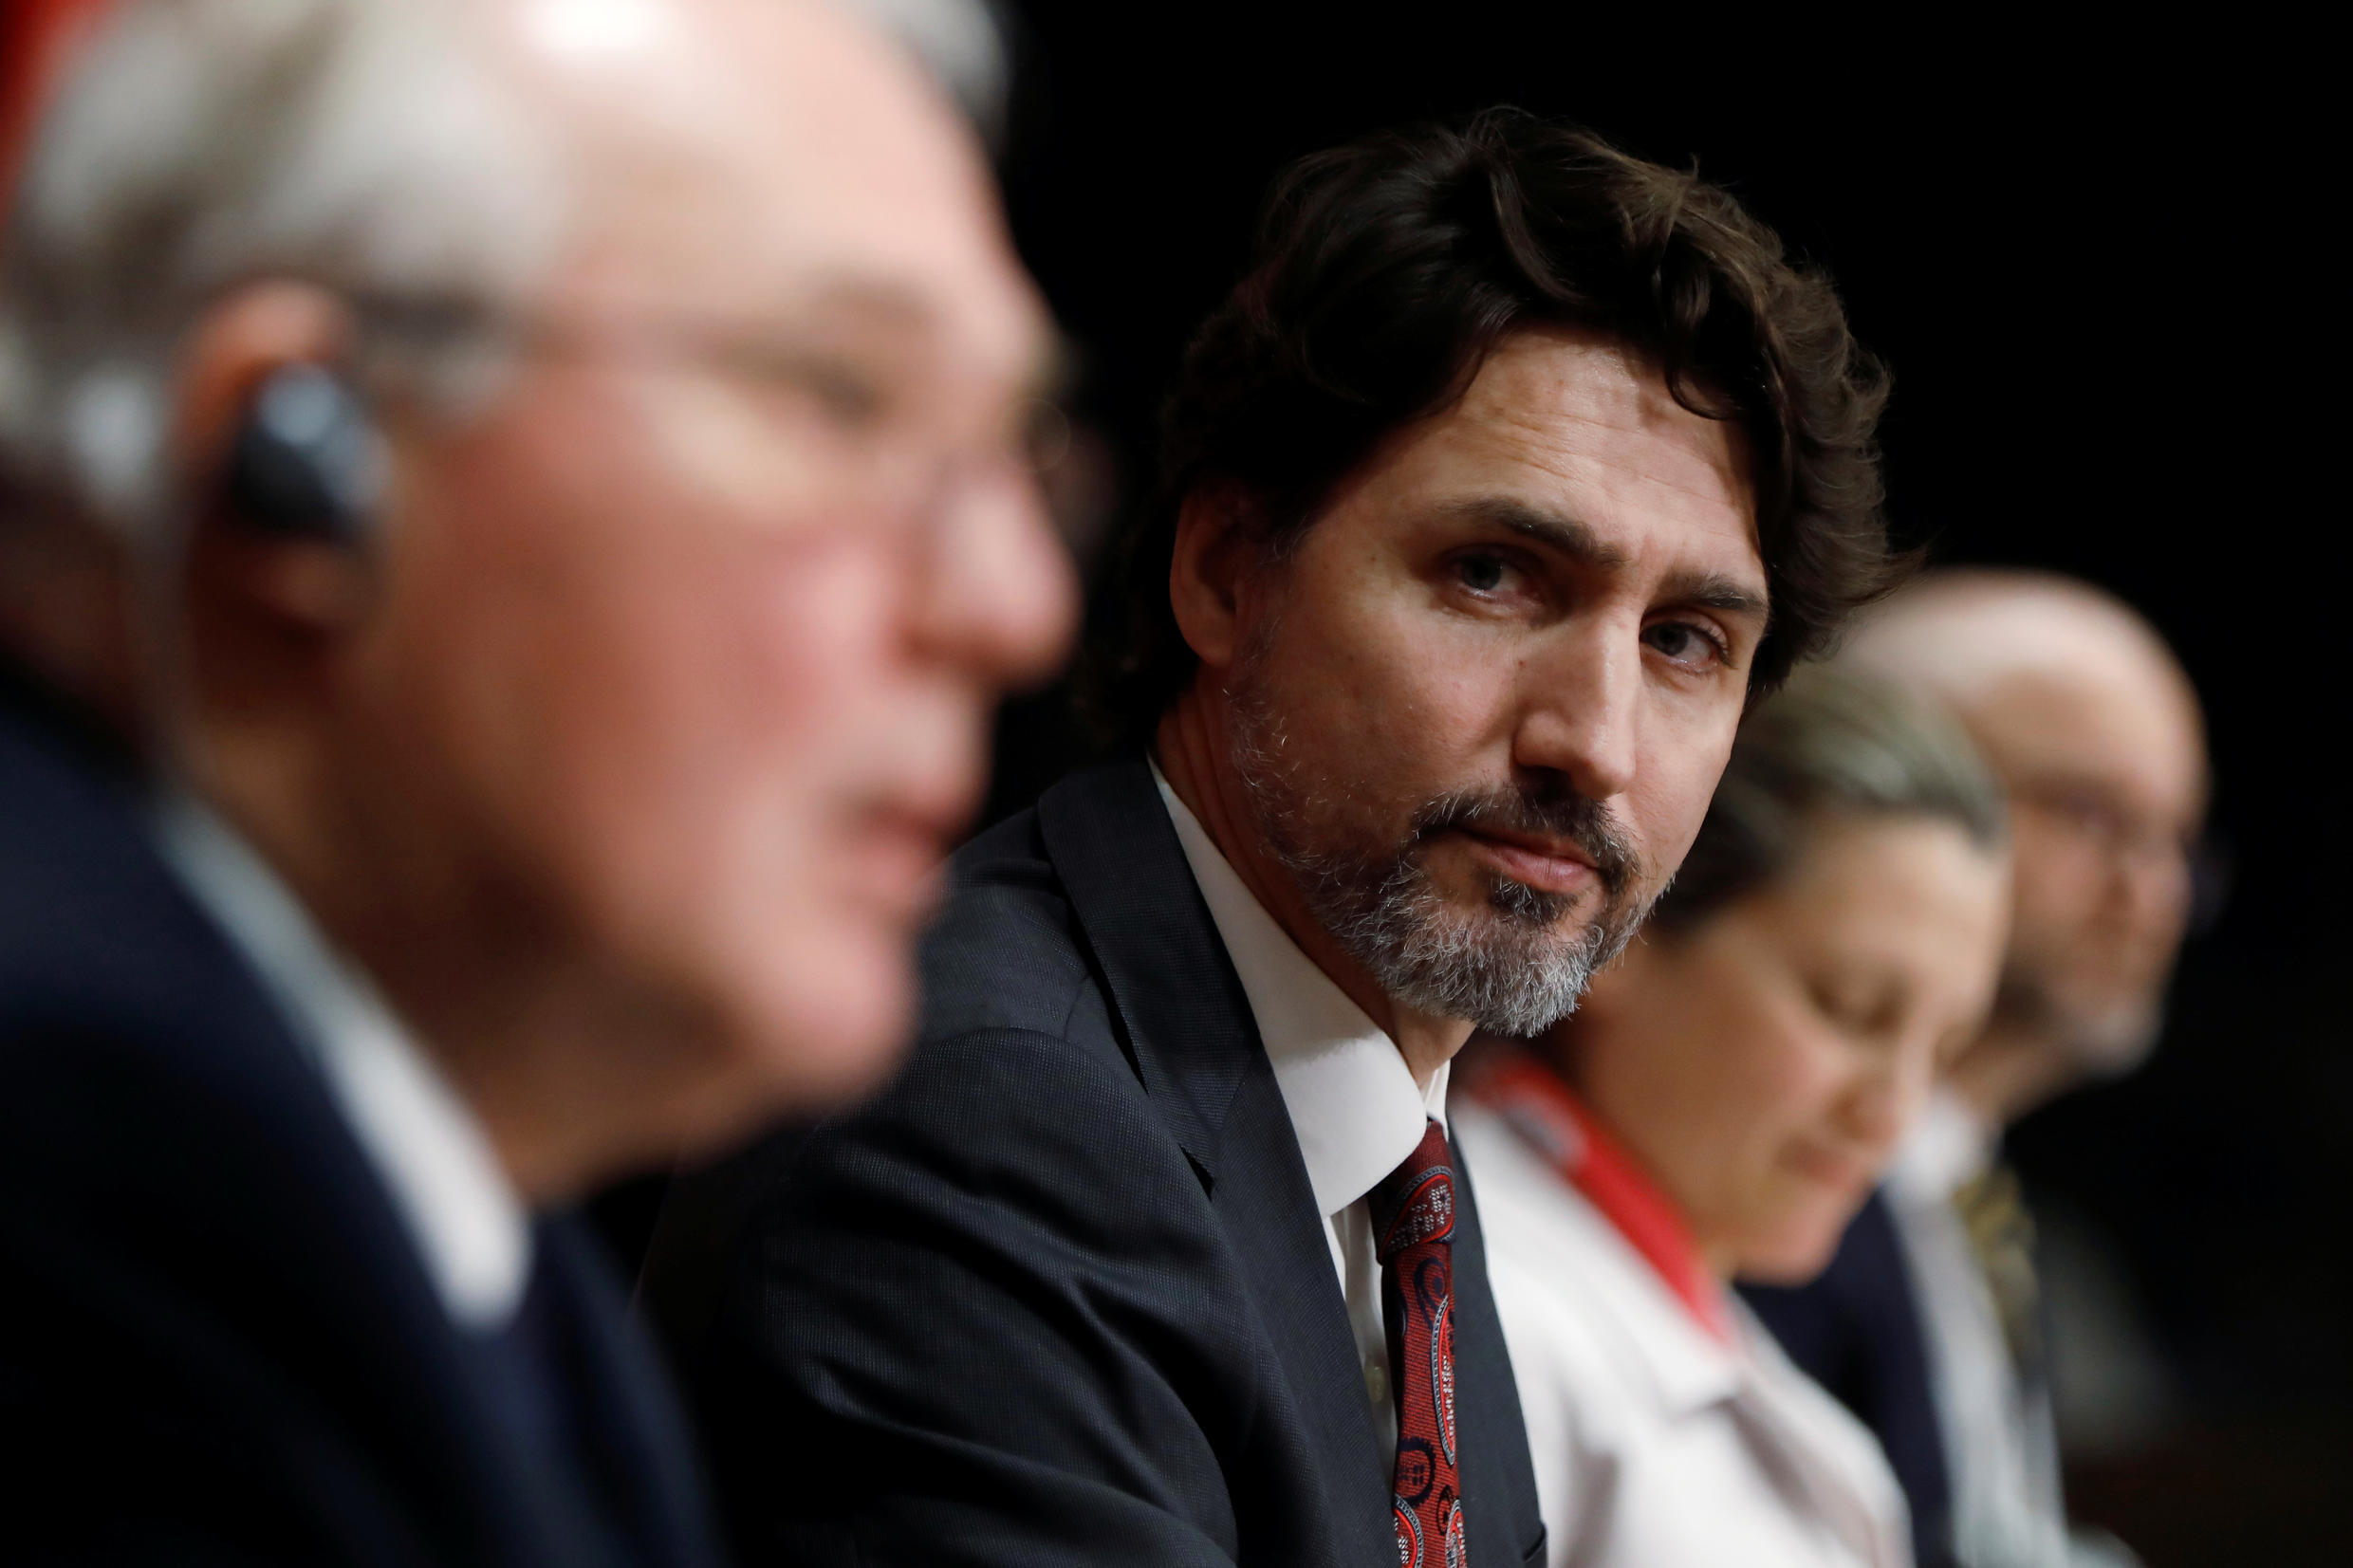 Canada's Prime Minister Justin Trudeau attends a news conference on Parliament Hill in Ottawa, Canada, on May 1, 2020.